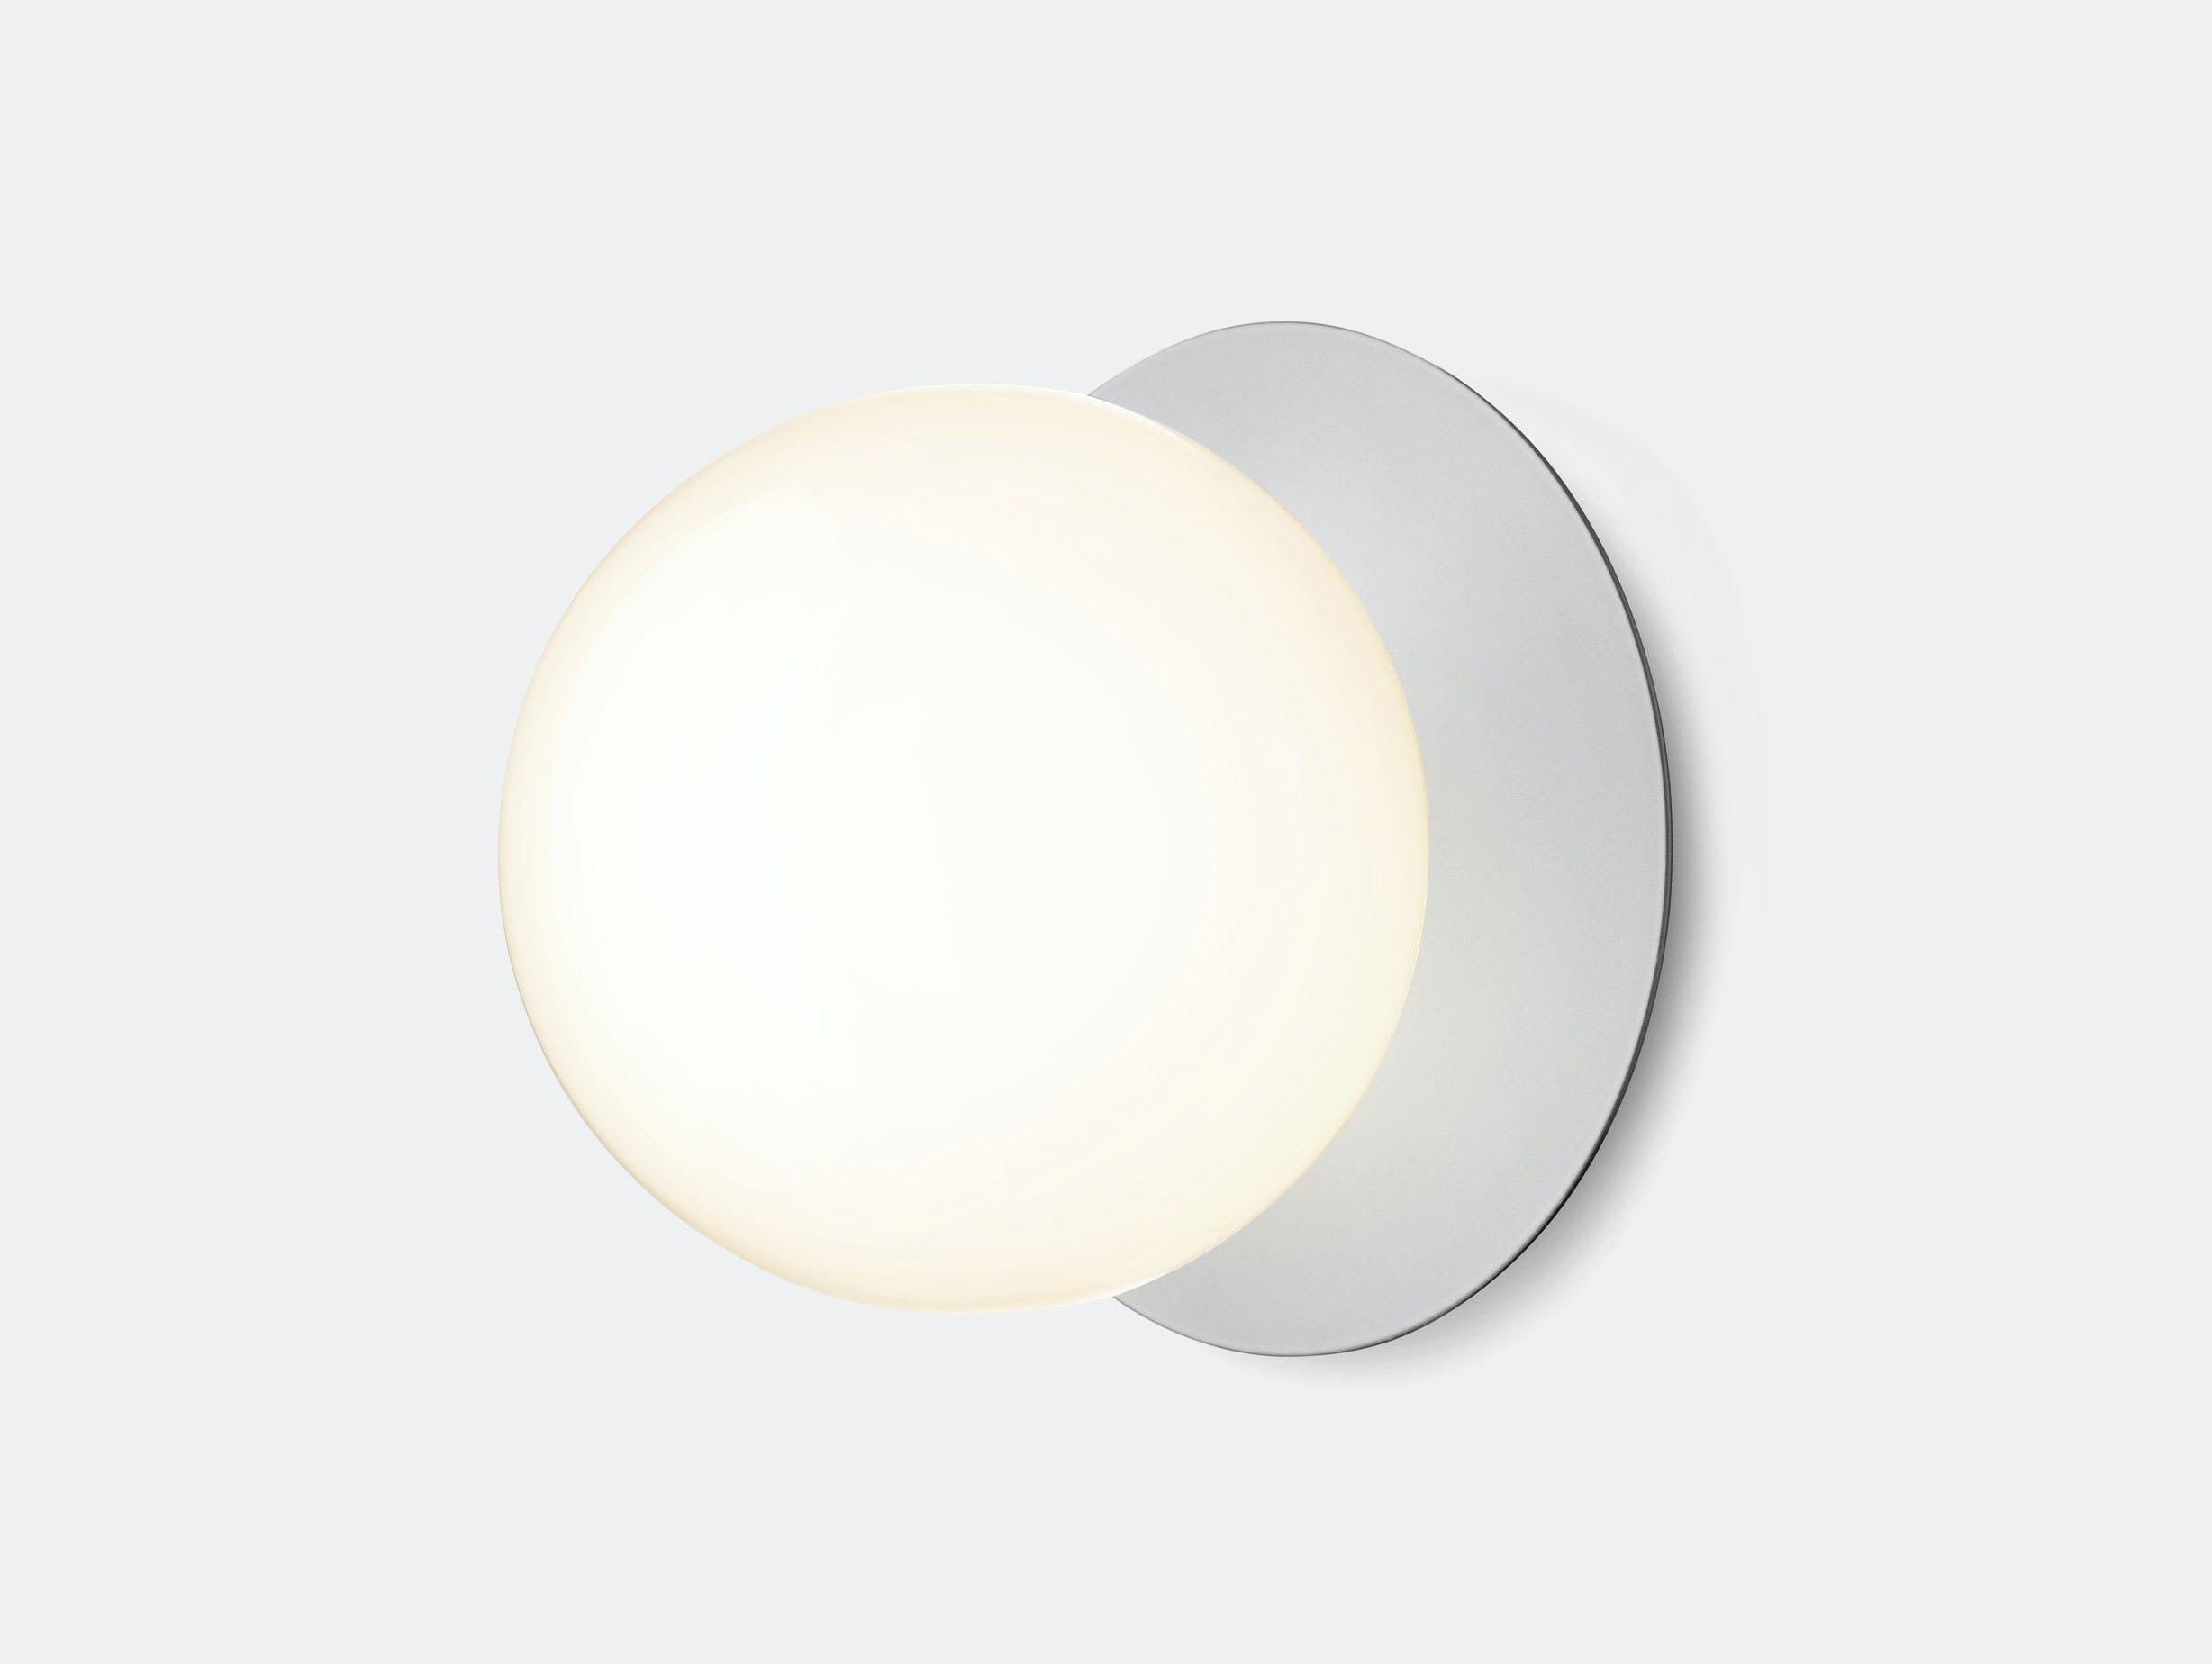 Nuura Liila 1 Wall Ceiling Light Opal Silver Large Sofie Refer